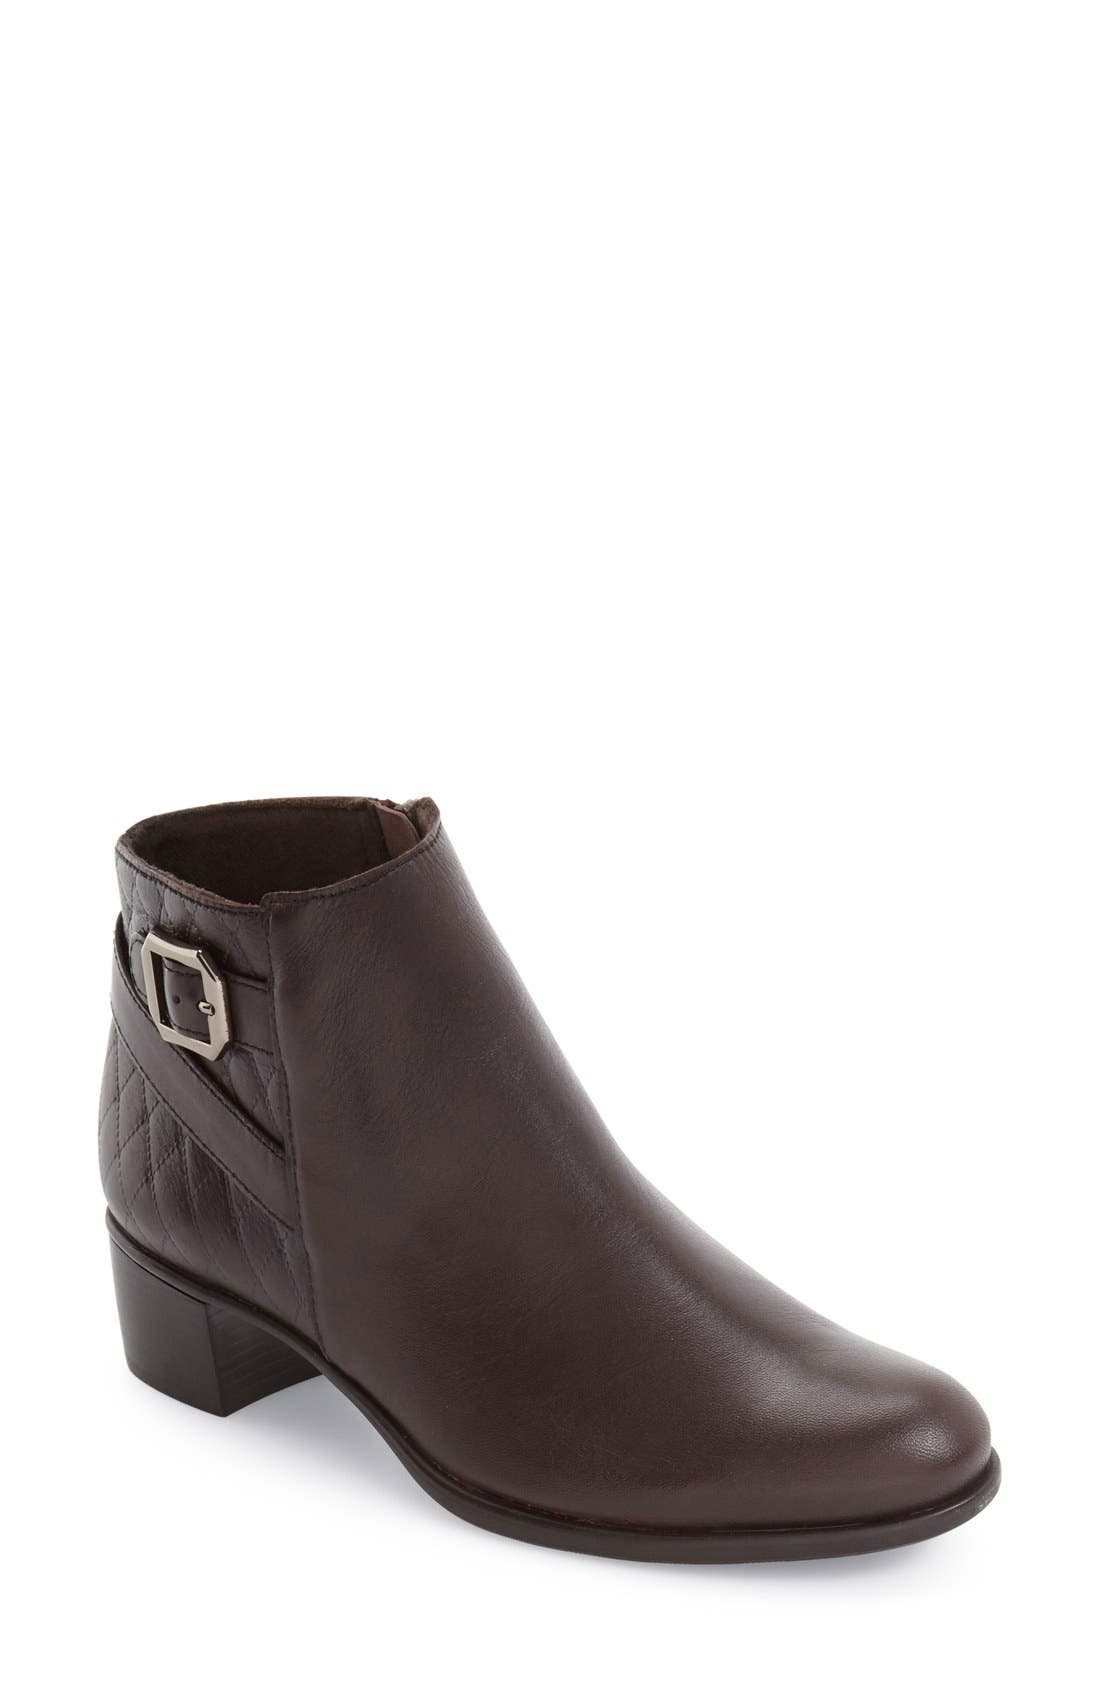 'Jolynn' Bootie,                             Main thumbnail 1, color,                             Brown Quilted Leather